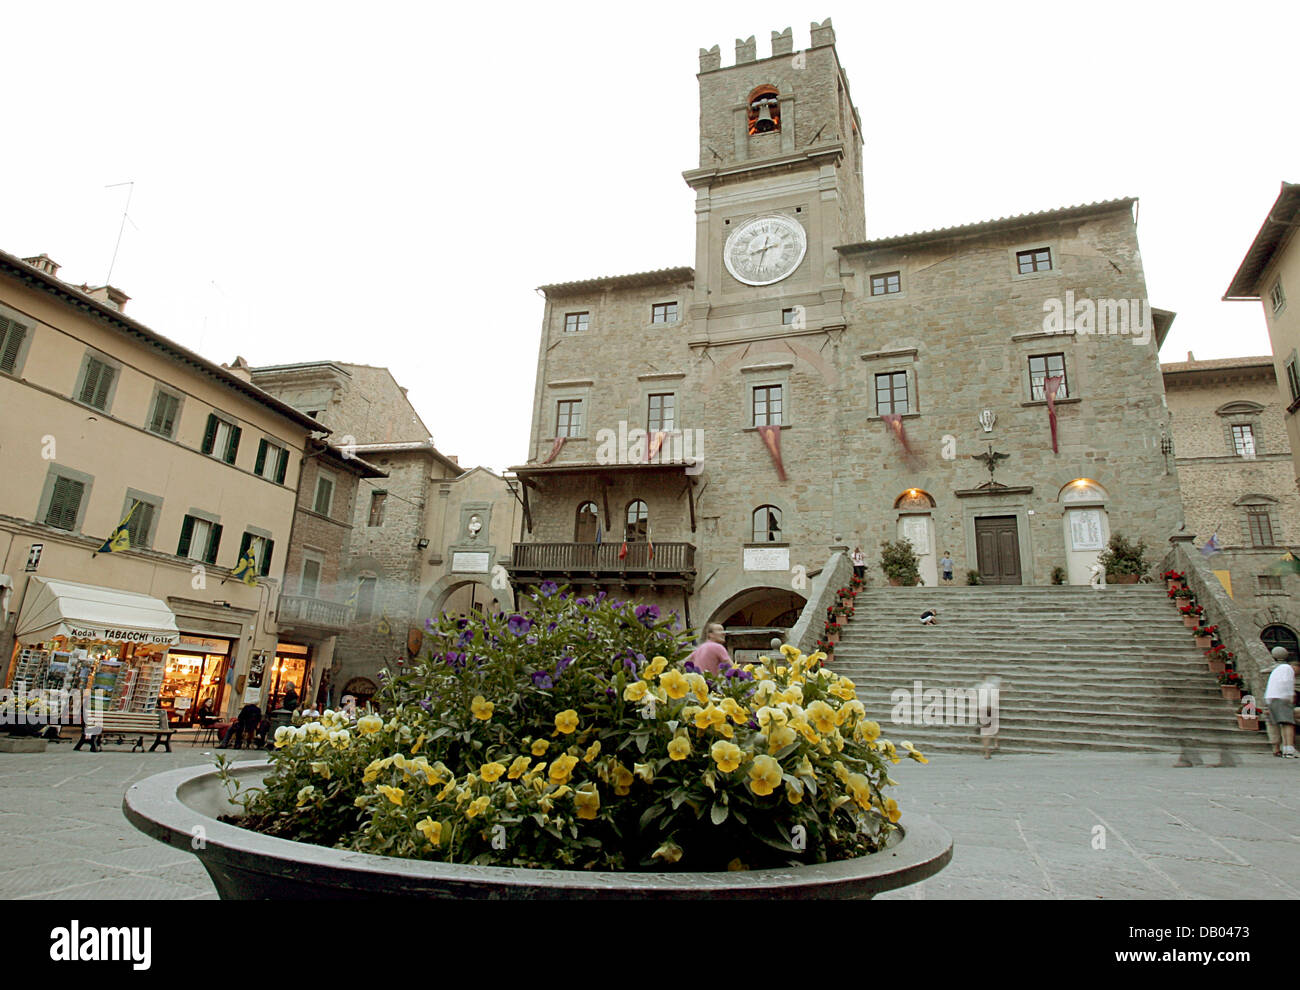 View on the town hall of Cortona, Italy, 23 May 2007. For the 5th time the 'Tuscan Sun Festival' takes place - Stock Image